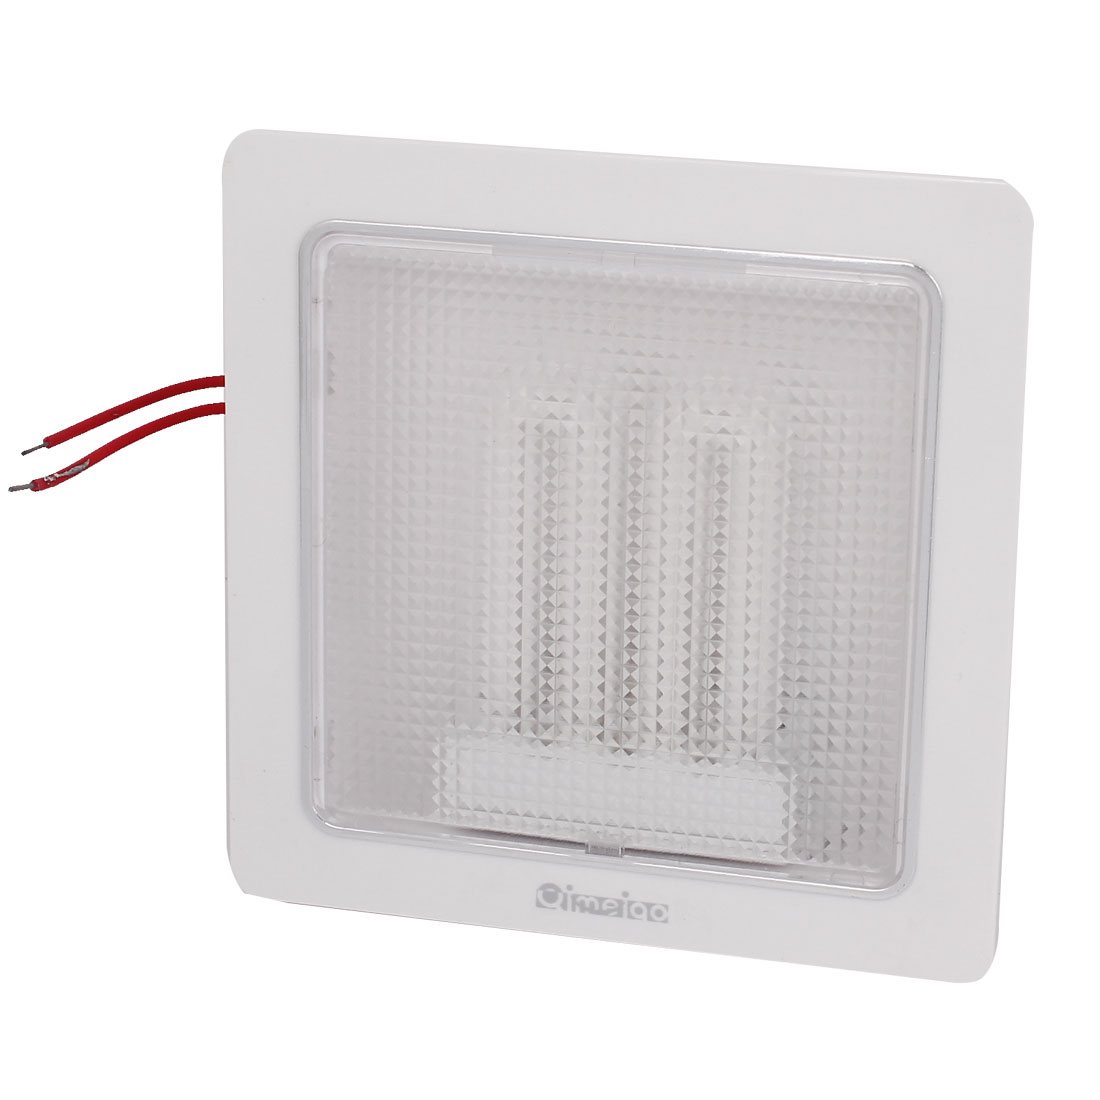 AC 220V 14cm x 14cm Square Recessed Mount White Ceiling Panel Lamp Downlight Bulb